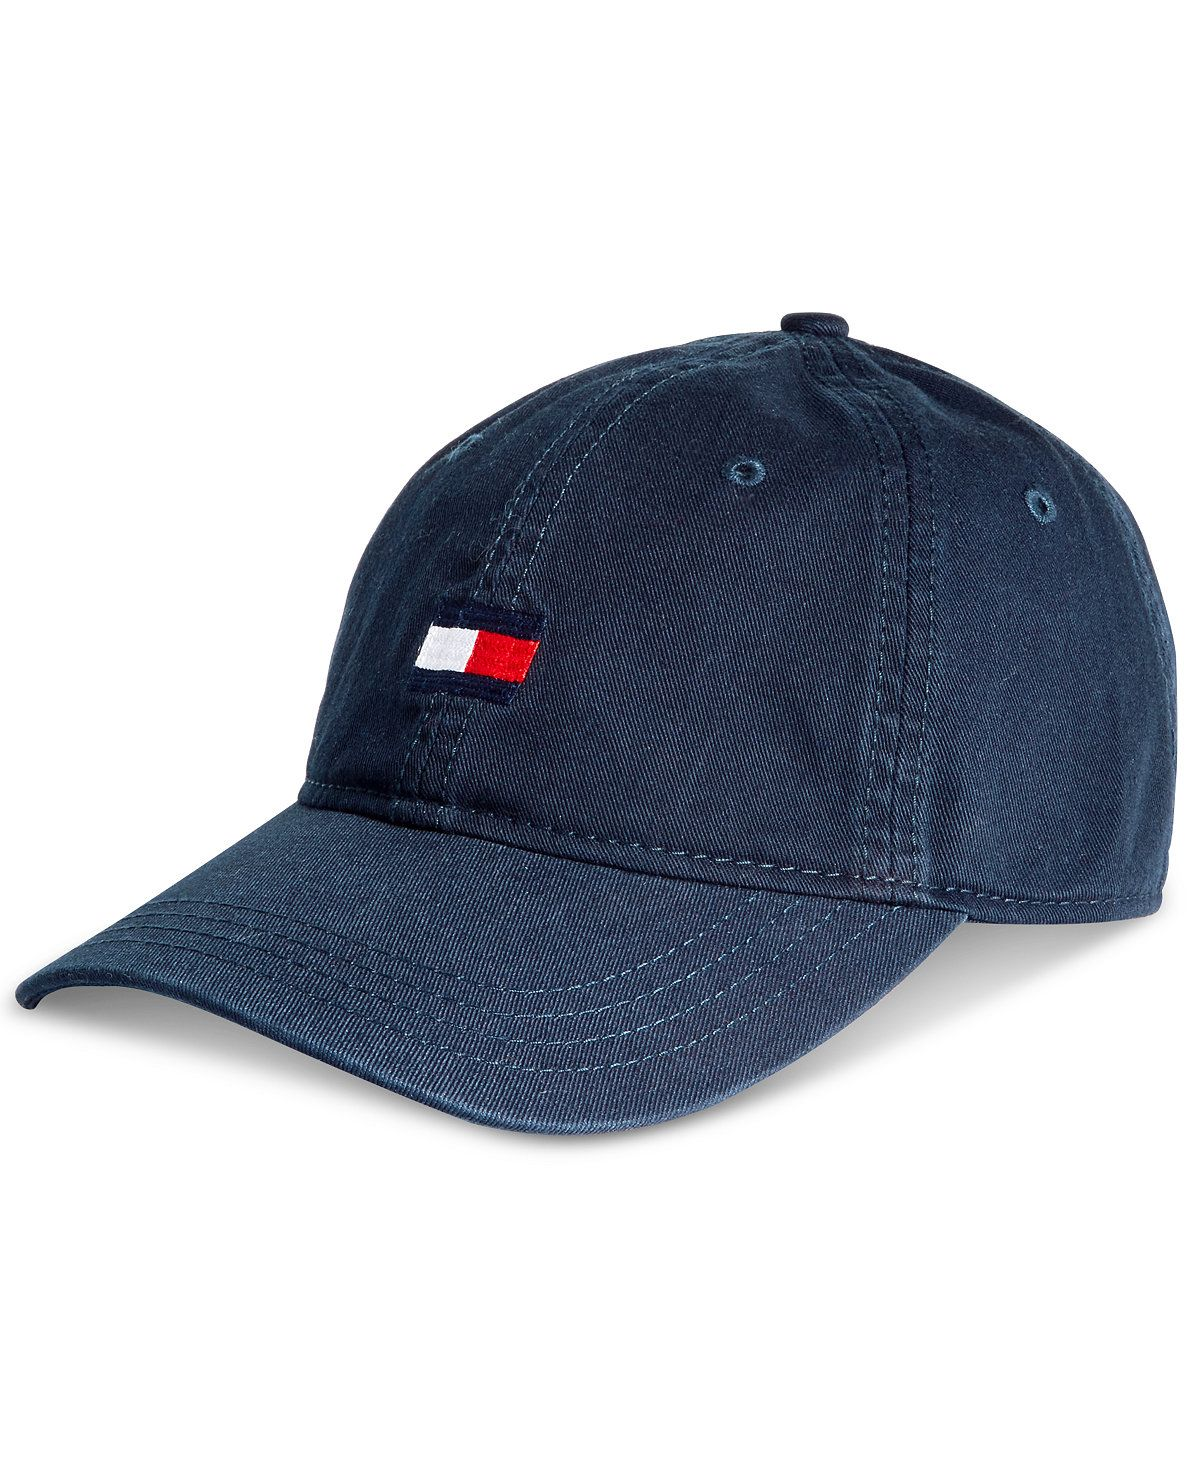 04314fe18154cb Shop Tommy Hilfiger Men's Ardin Cap online at Macys.com. Featuring classic  six-panel styling and an embroidered logo at the front, this Ardin cap from  Tommy ...